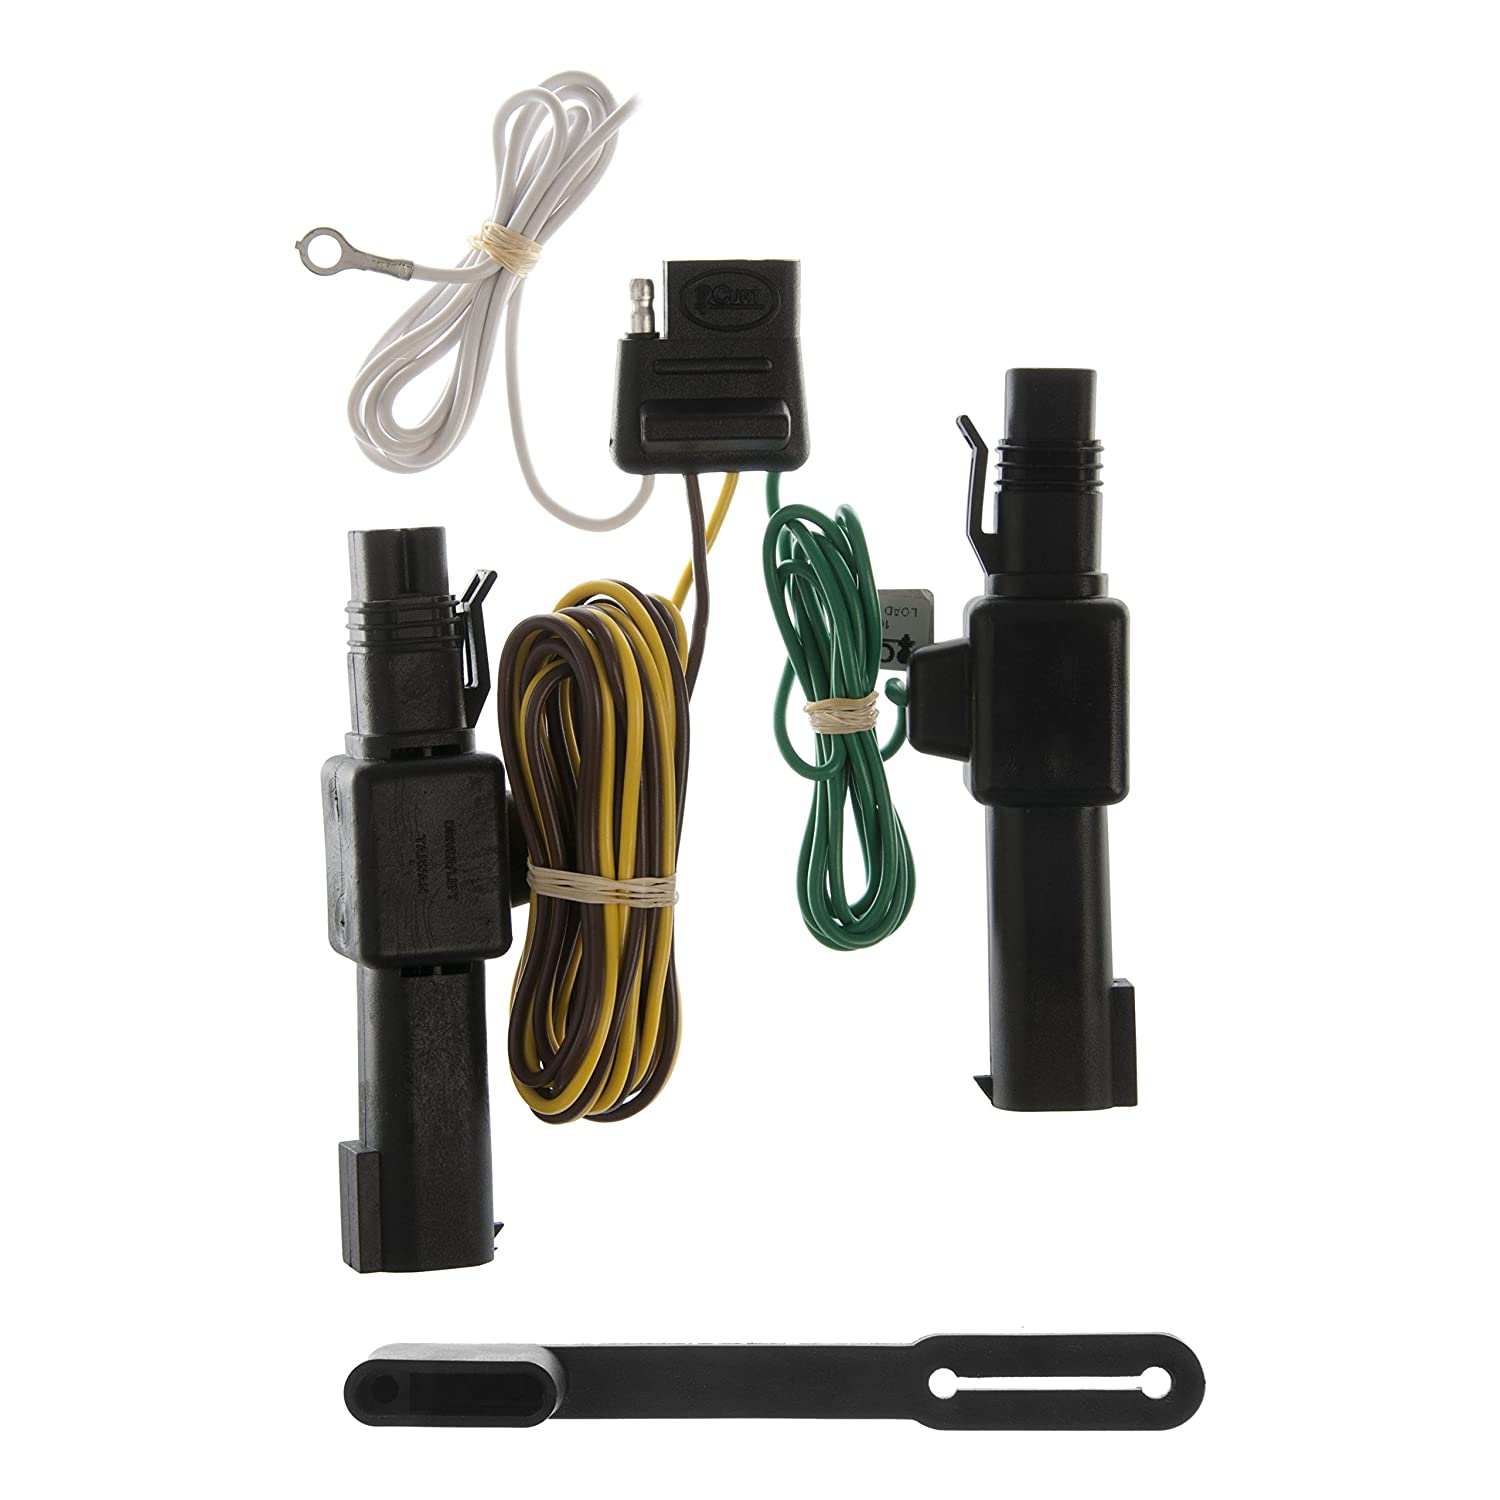 Curt Class 4 Trailer Hitch Bundle With Wiring For 1994 Chevy Equinox Dodge Ram 1500 2500 3500 14001 55317 Automotive